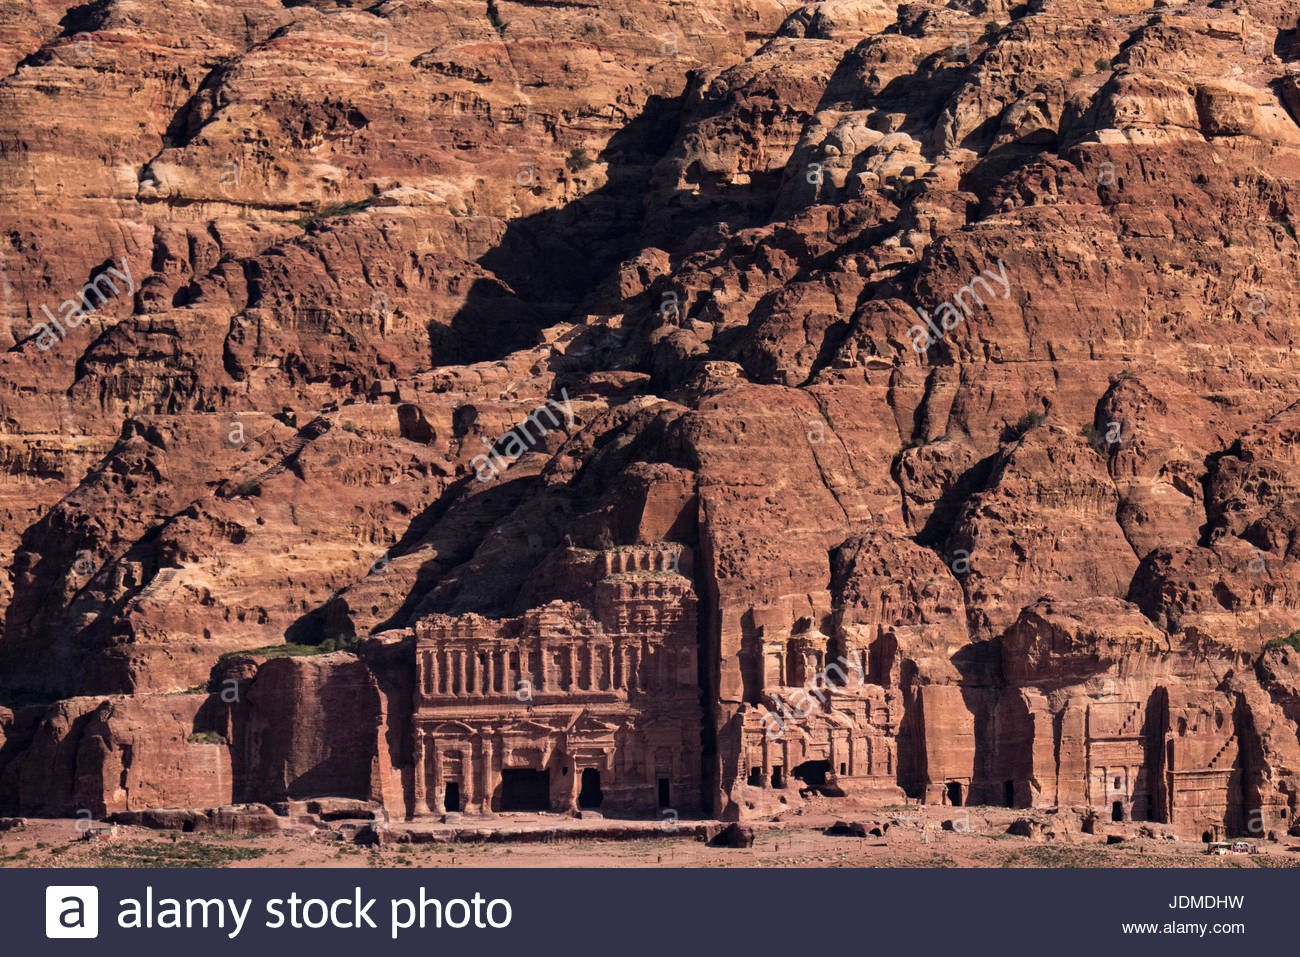 View of the Royal Tombs in Petra. Stock Photo